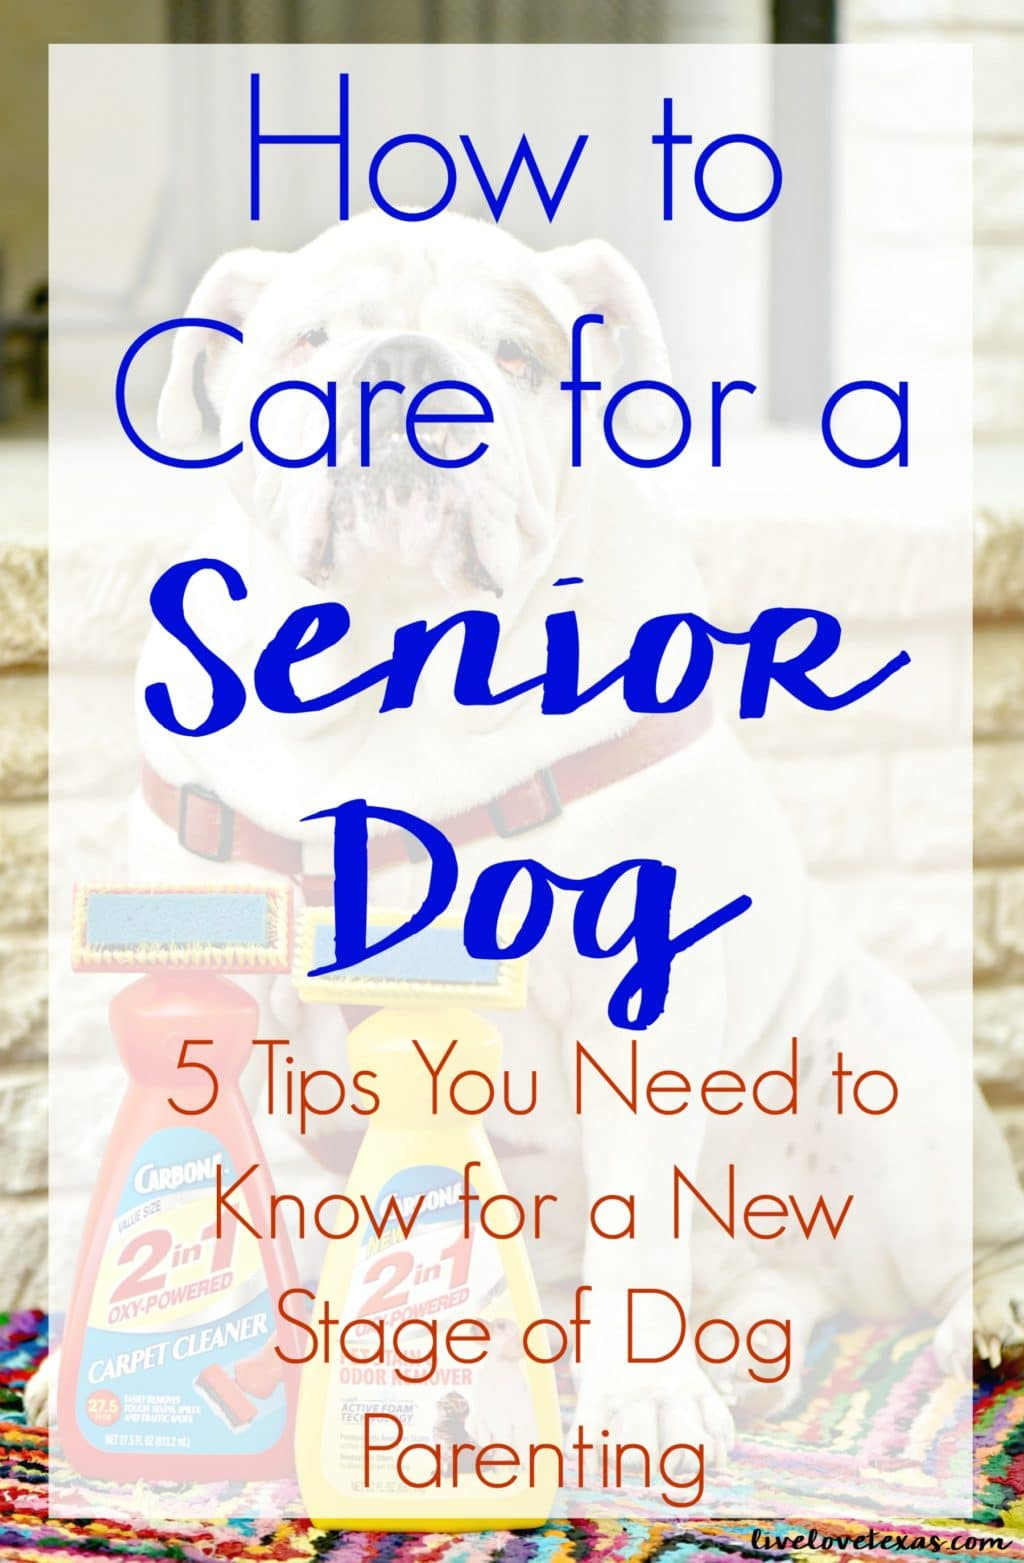 You never really know how to parent until you get to that stage. Take advice from someone that's in the thick of it and learn how to care for a senior dog!